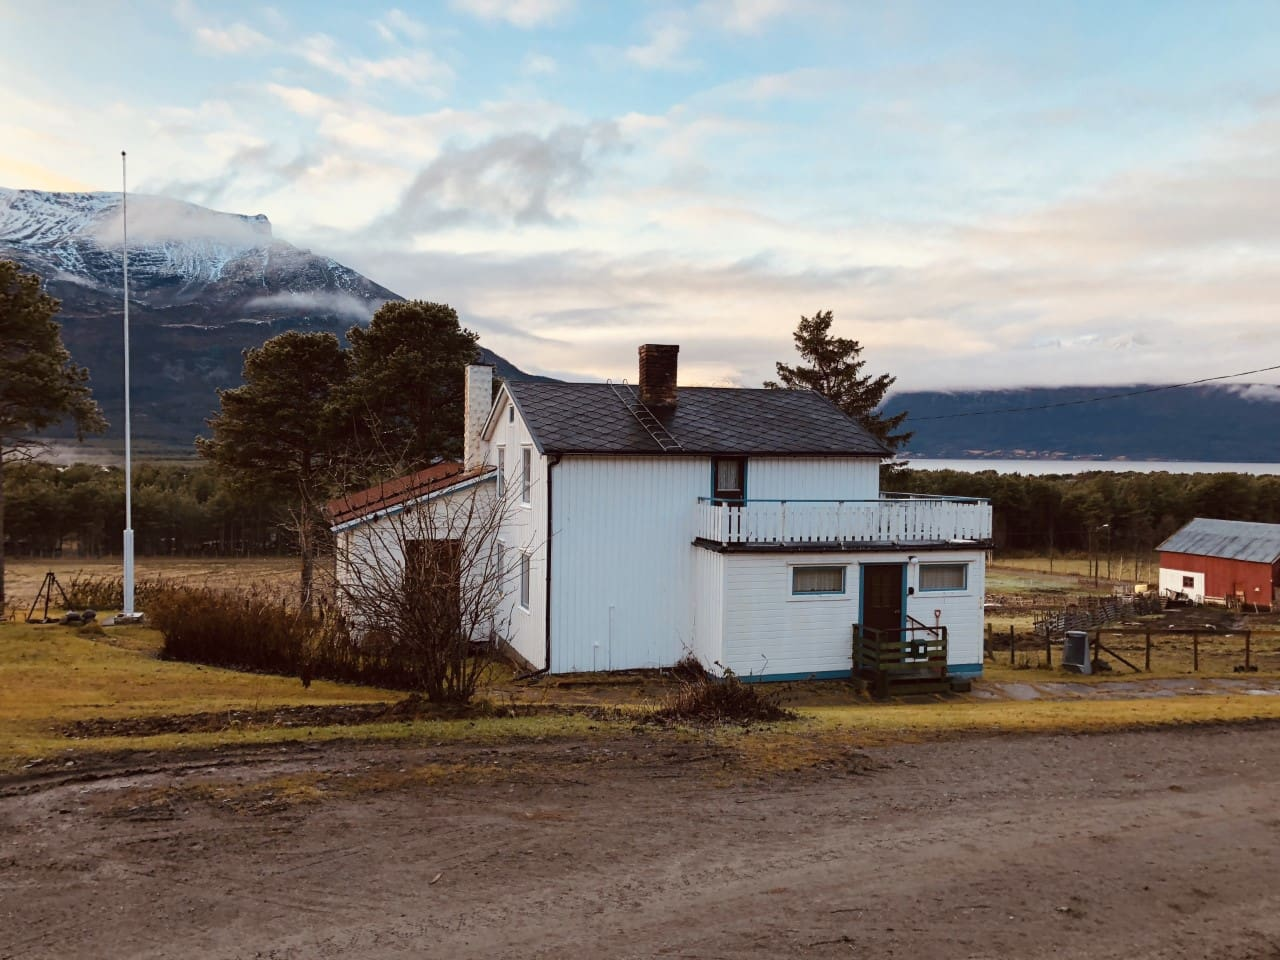 The old farmhouse is placded on top of a slope with a stuning view over the mountanins and the fjord, there is plenty of space outside for campfire or observing northern lights.